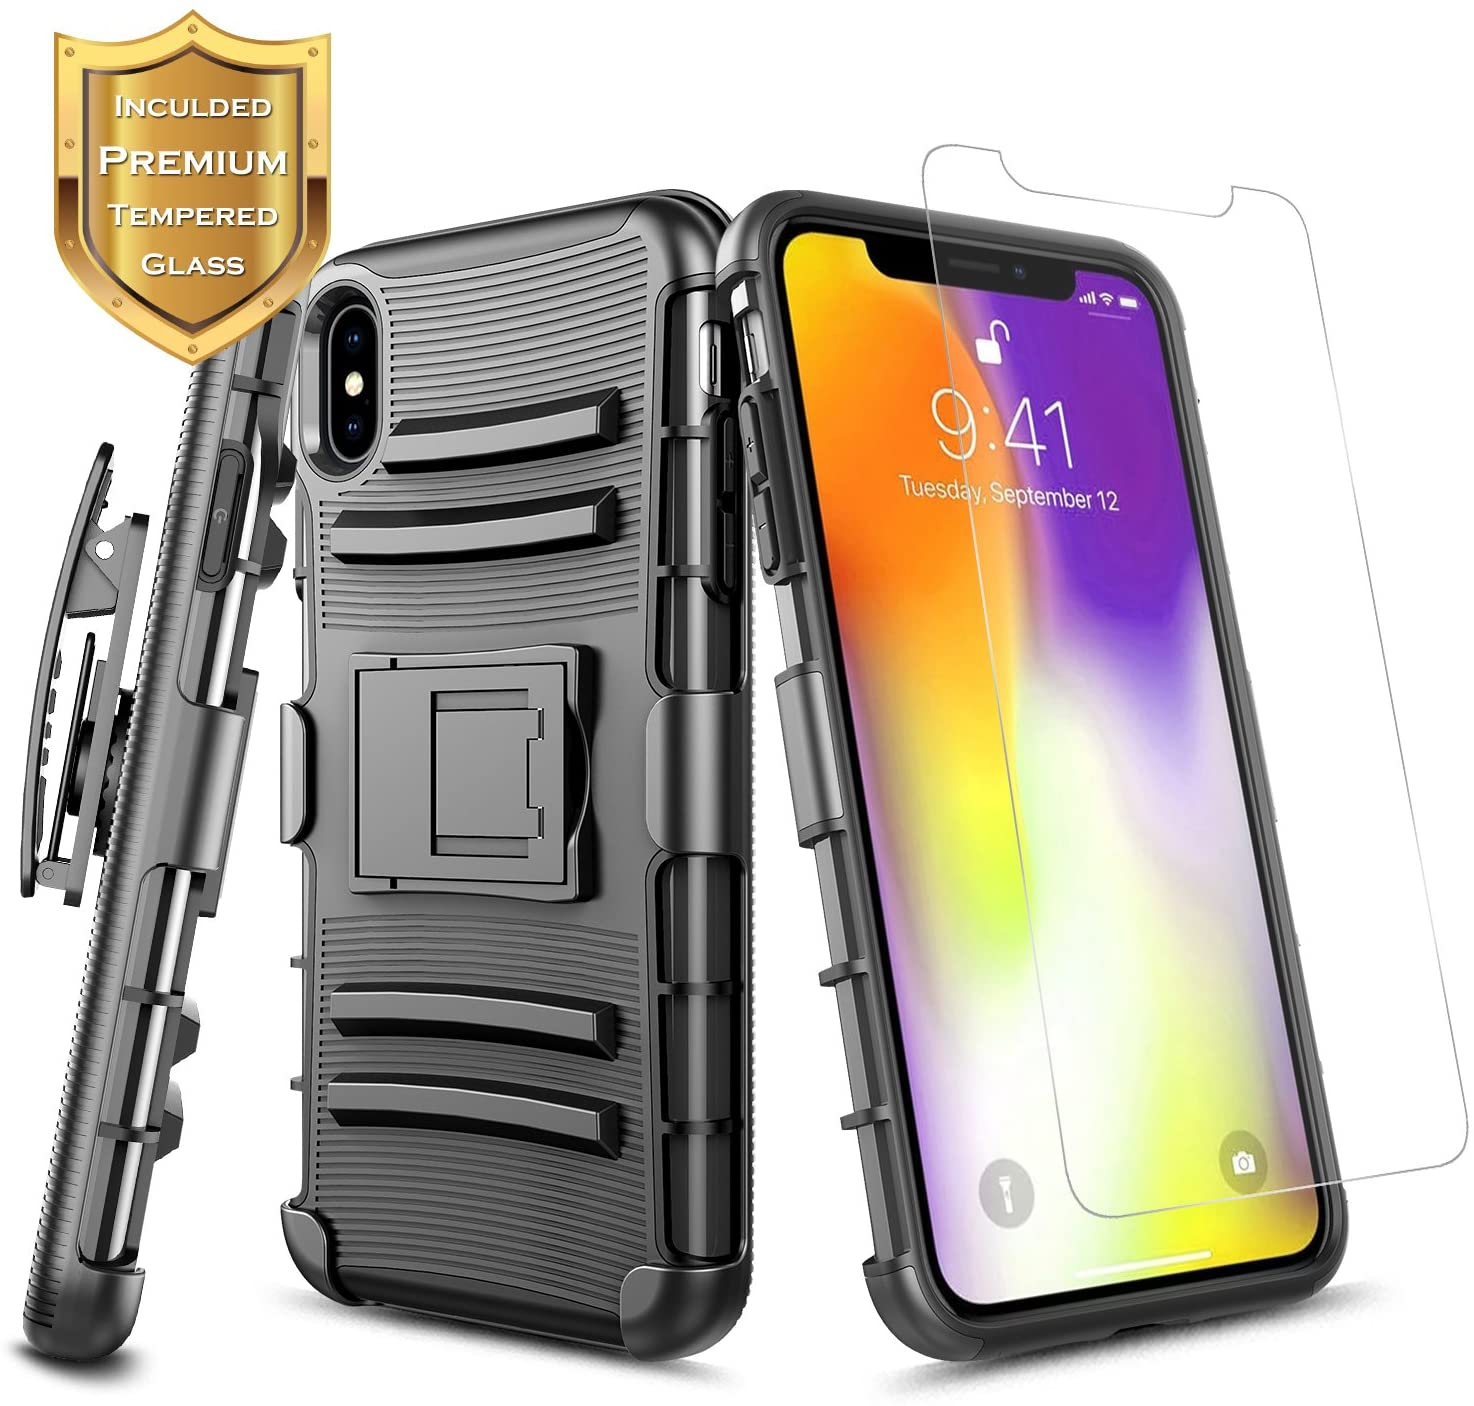 iPhone Xs Max Case w/[Tempered Glass Screen Protector], NageBee Belt Clip Holster Heavy Duty Armor Shock Proof Dual Layer Kickstand Rugged Combo Case for iPhone Xs Max 6.5 inch - Black